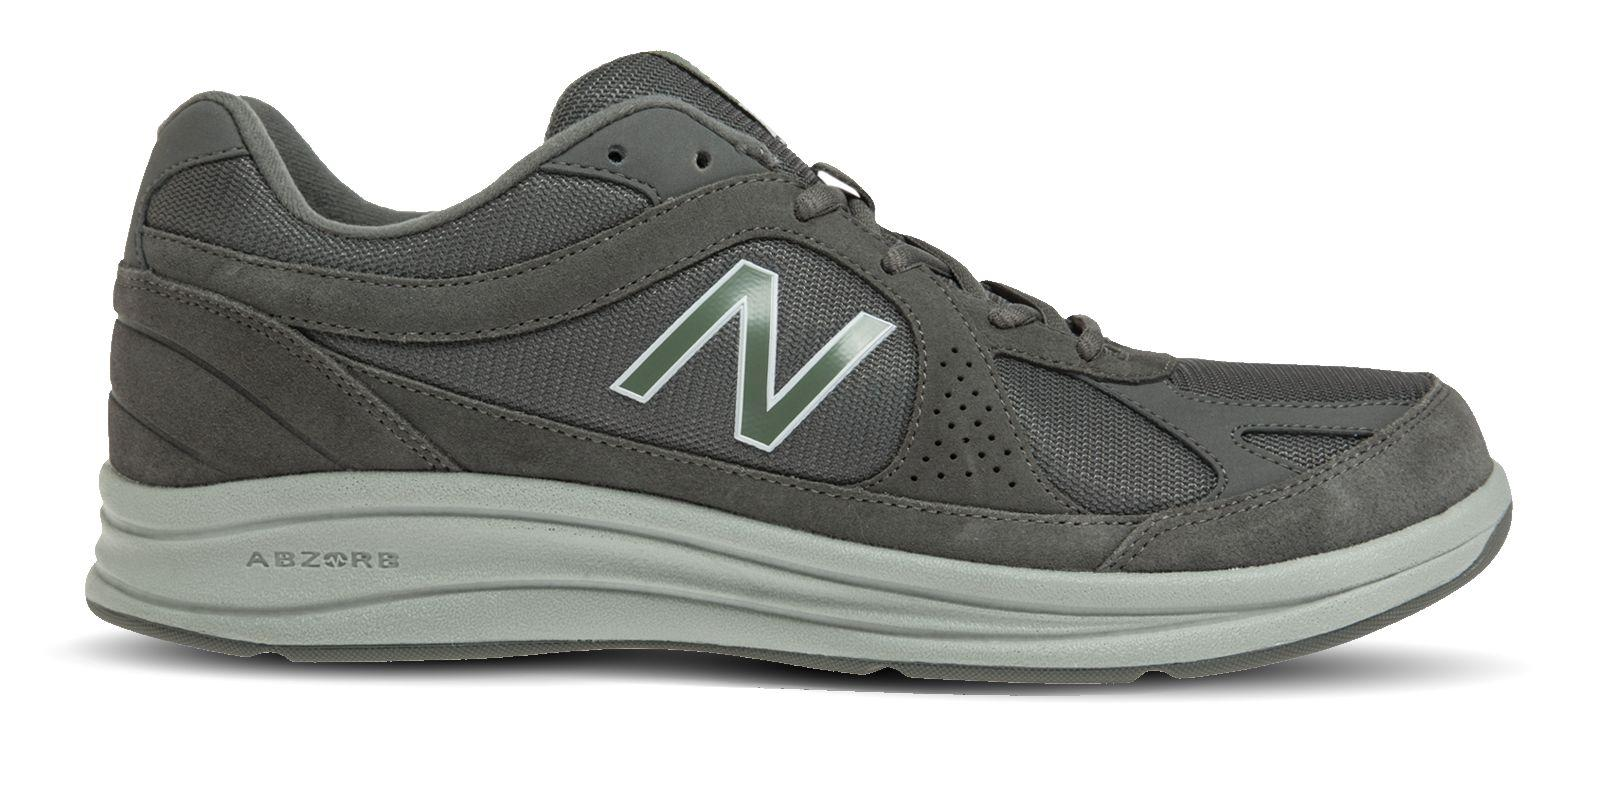 New Balance 877 Walking Shoes in Grey